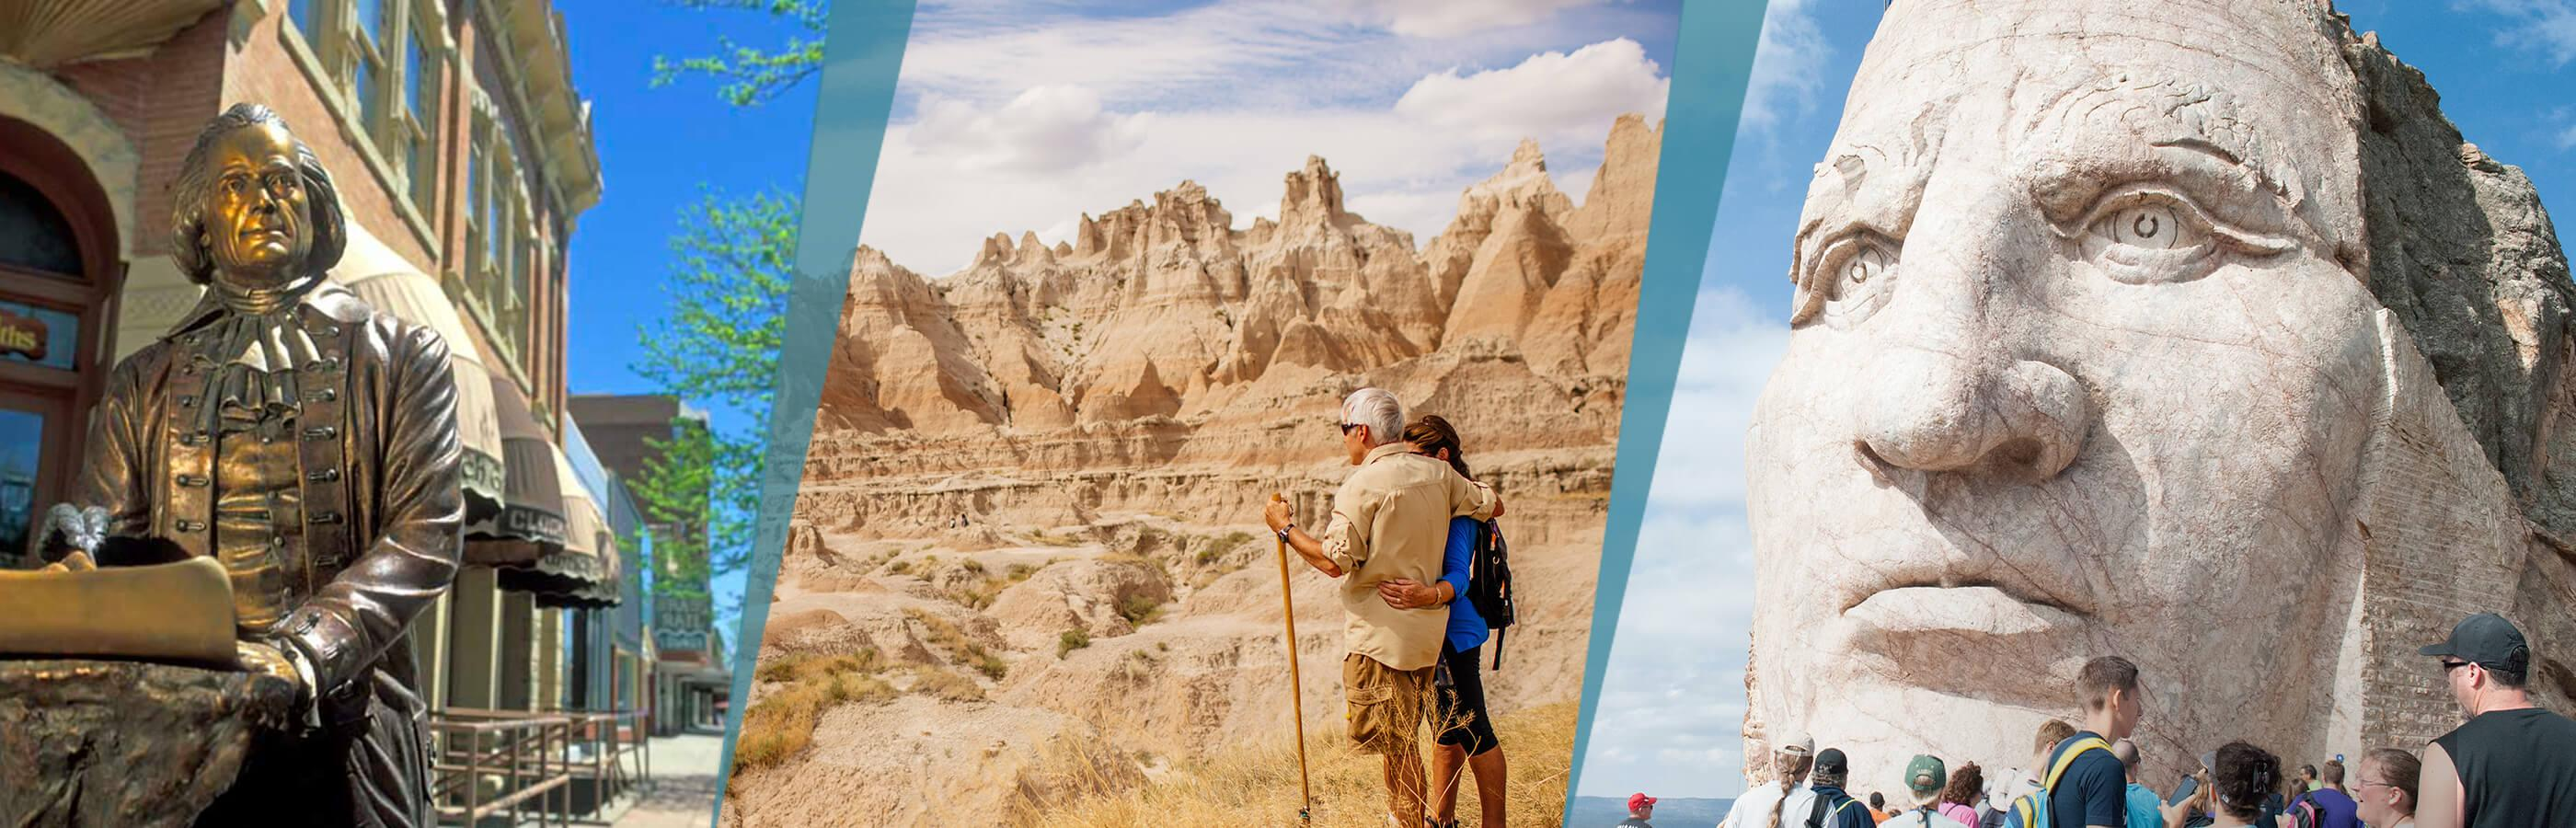 Tour beyond Mount Rushmore with City of presidents, Crazy Horse, and Badlands National Park